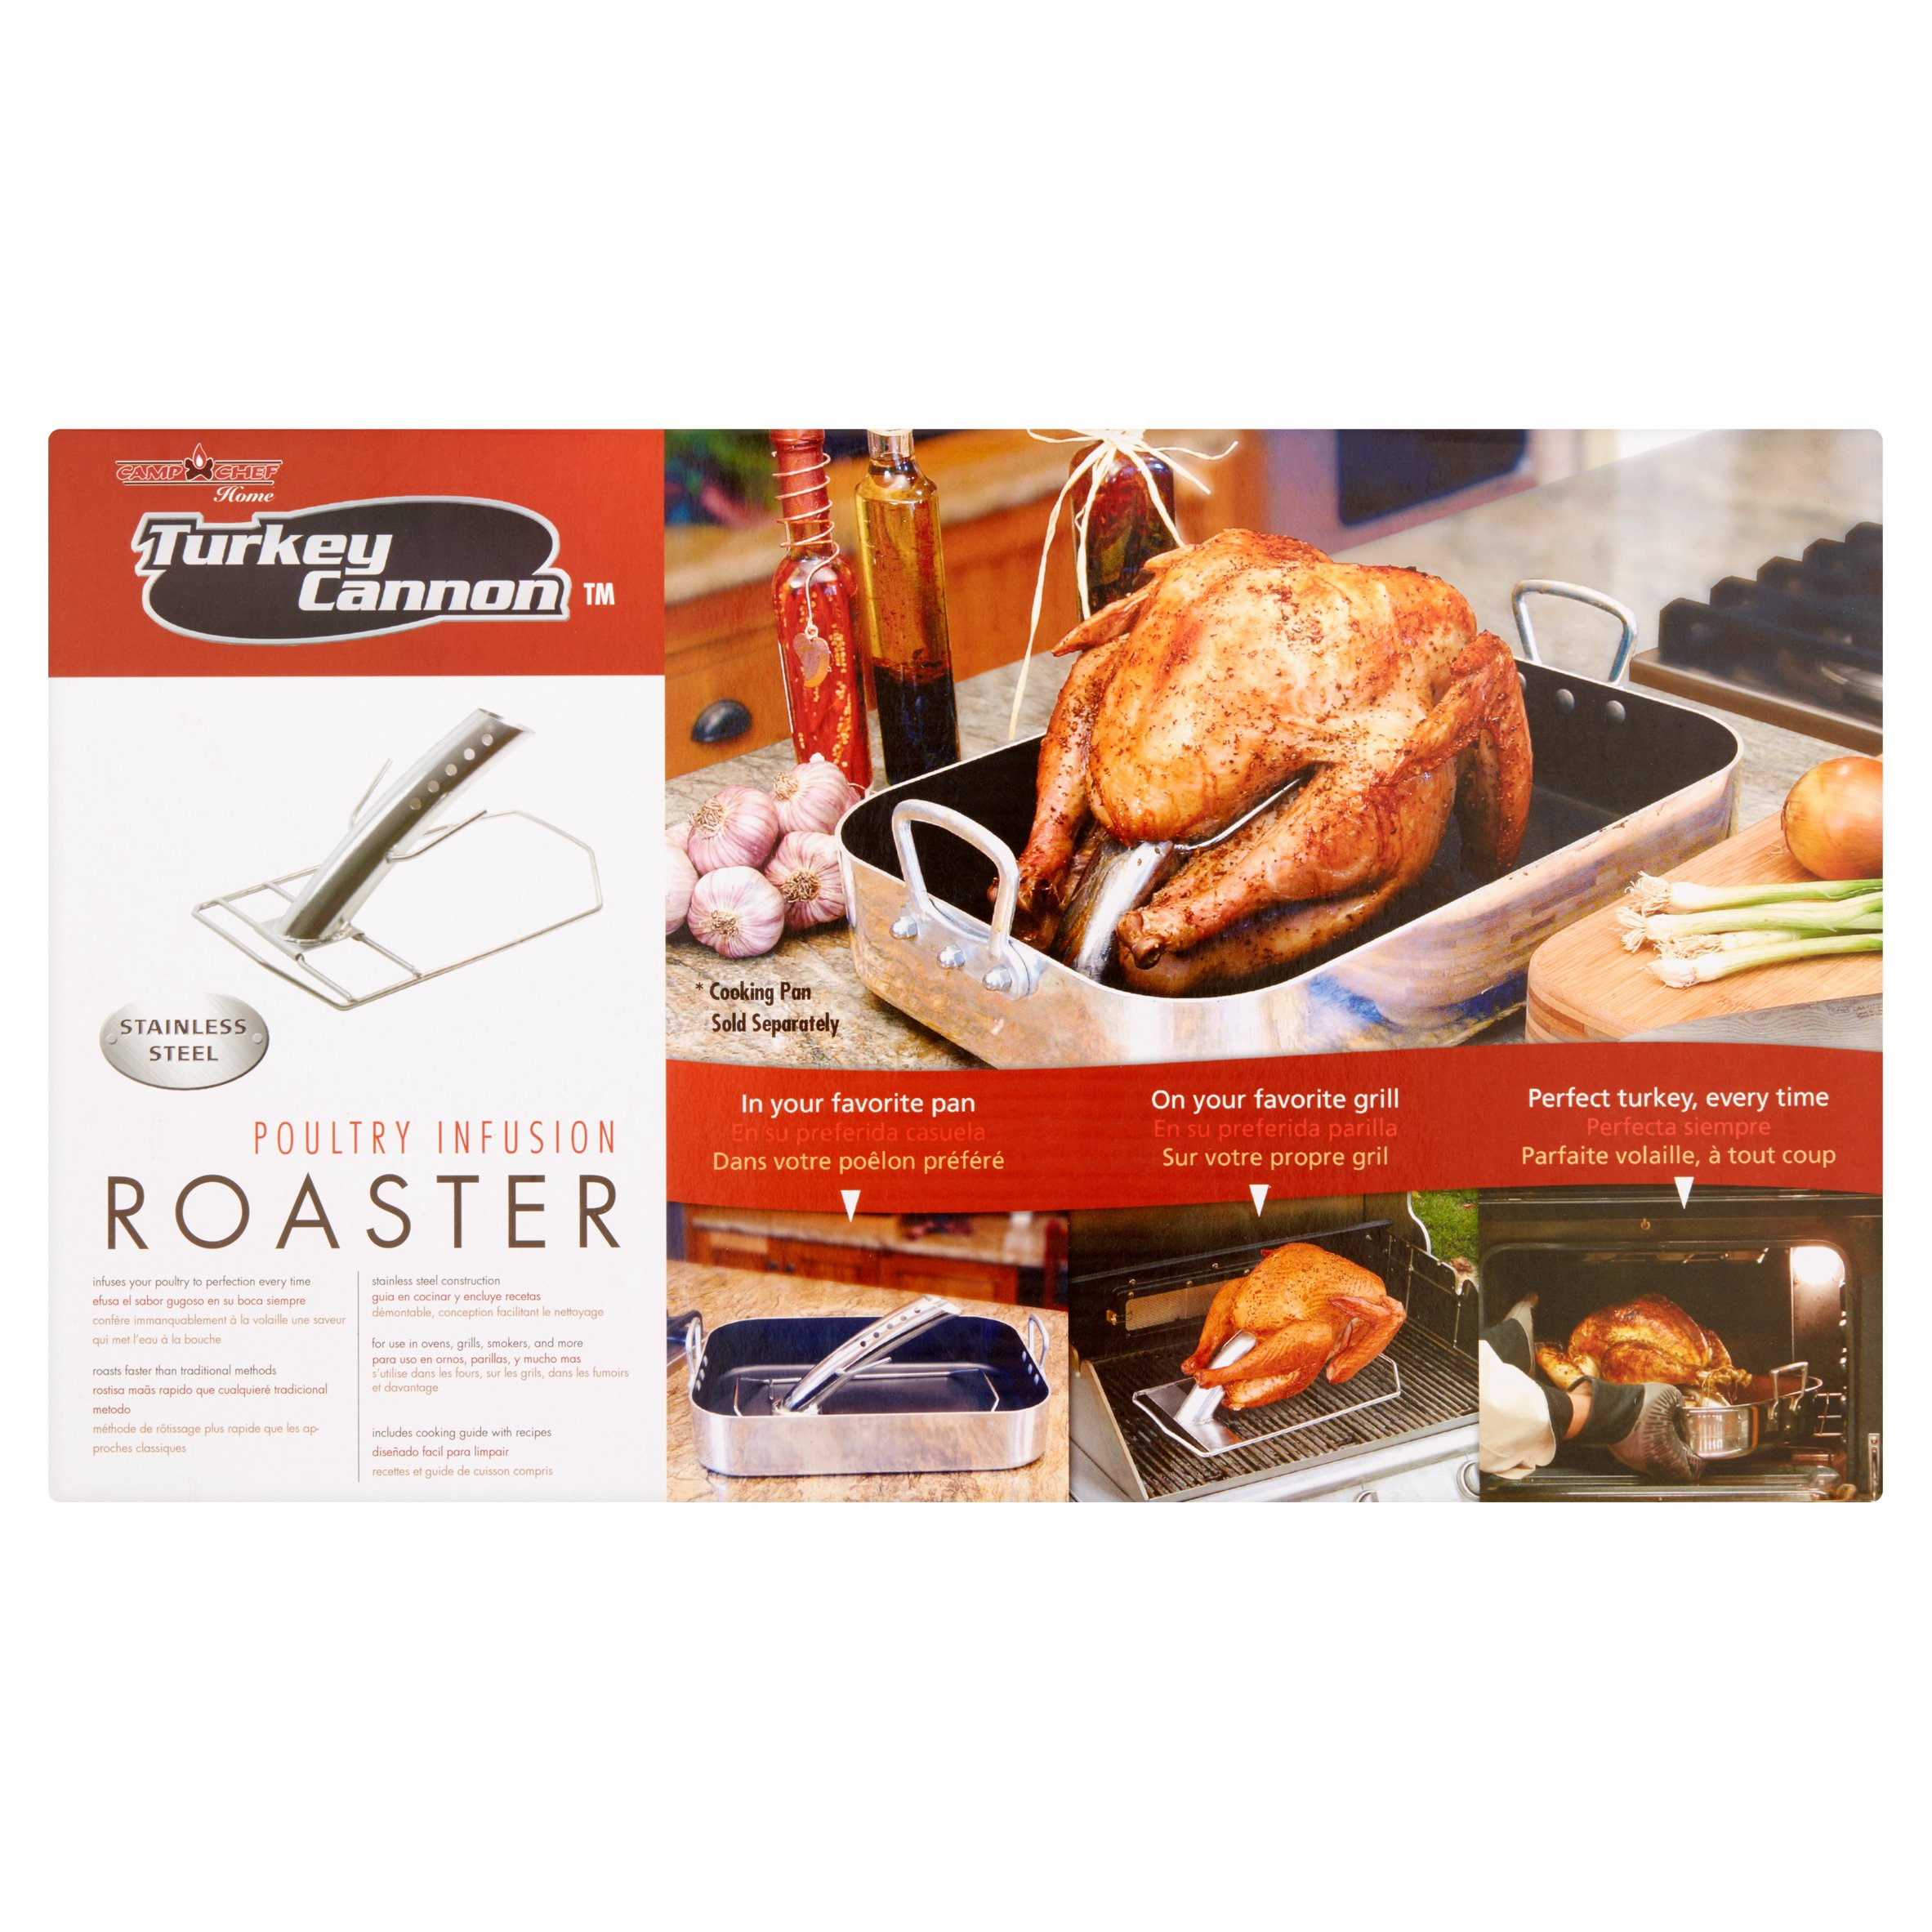 Camp Chef Turkey Cannon Stainless Steel Poultry Infusion Roaster